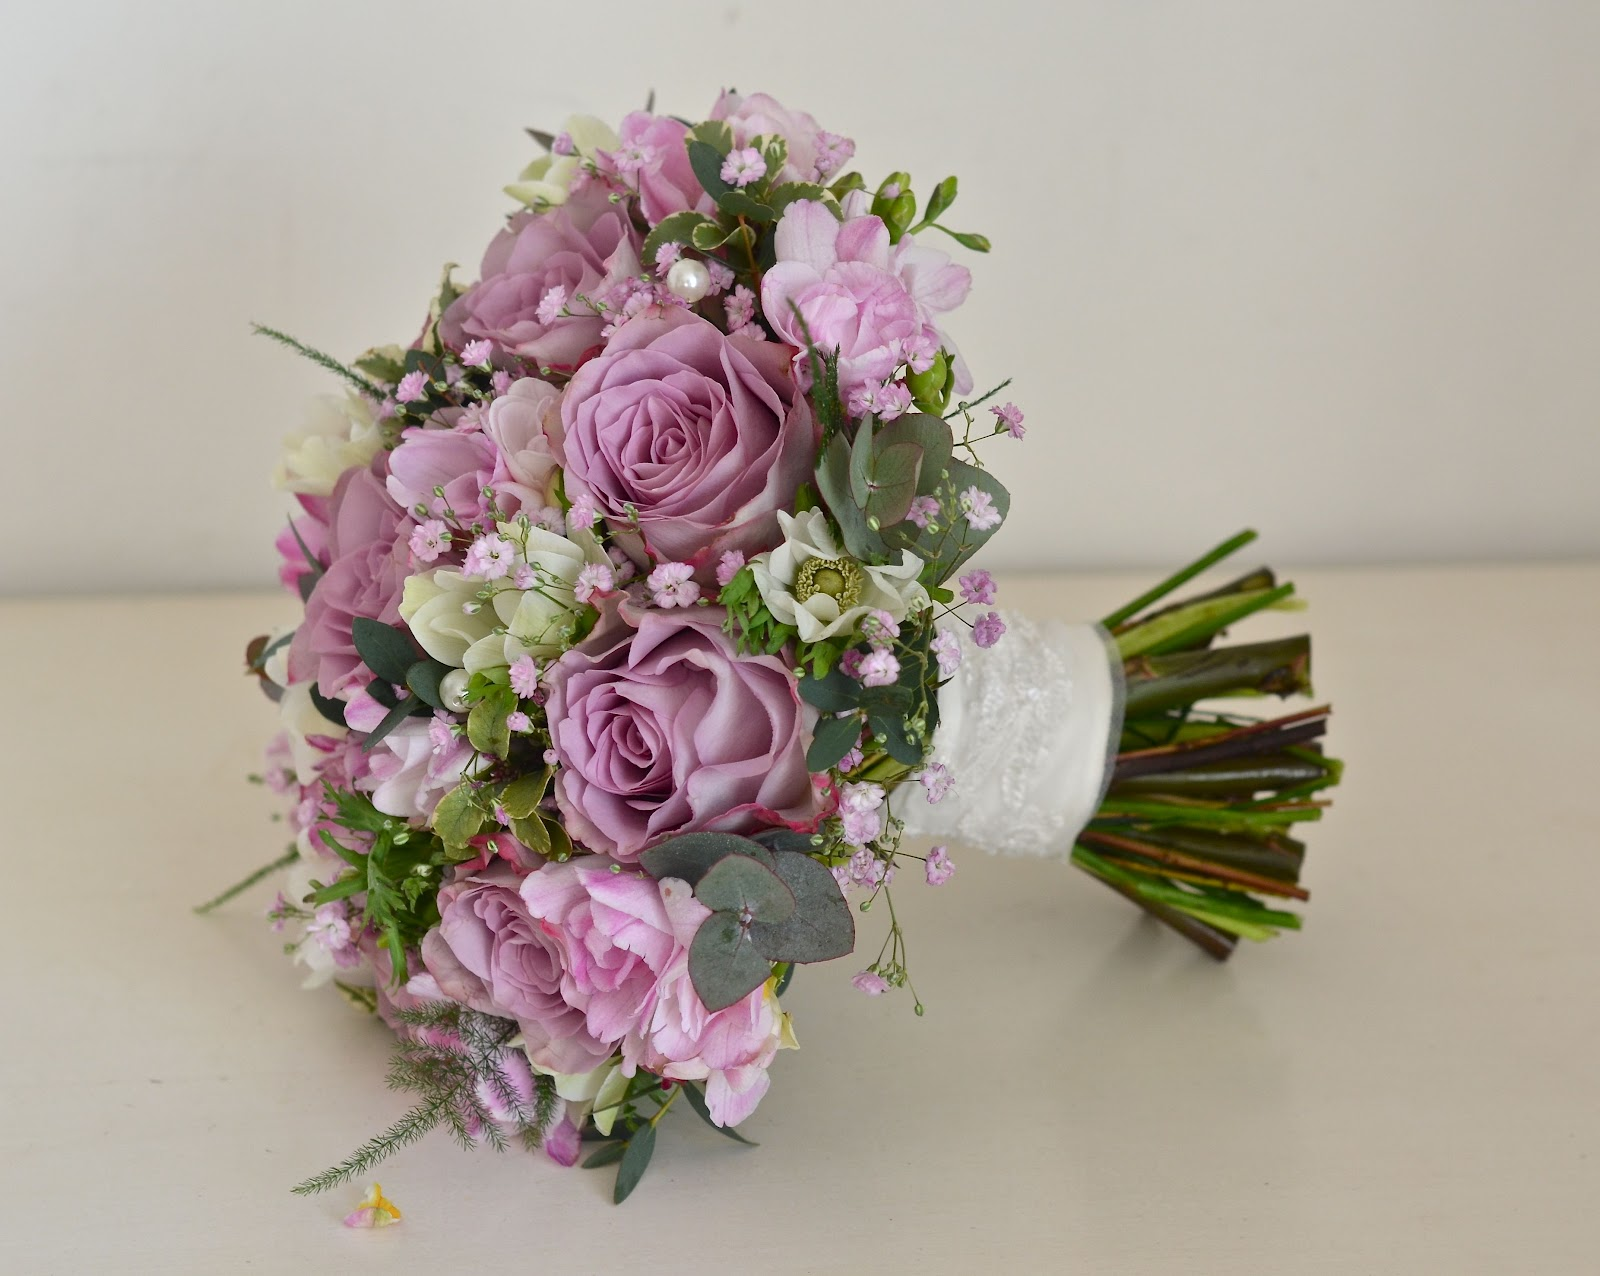 Wedding Bouquets In April : Wedding flowers april